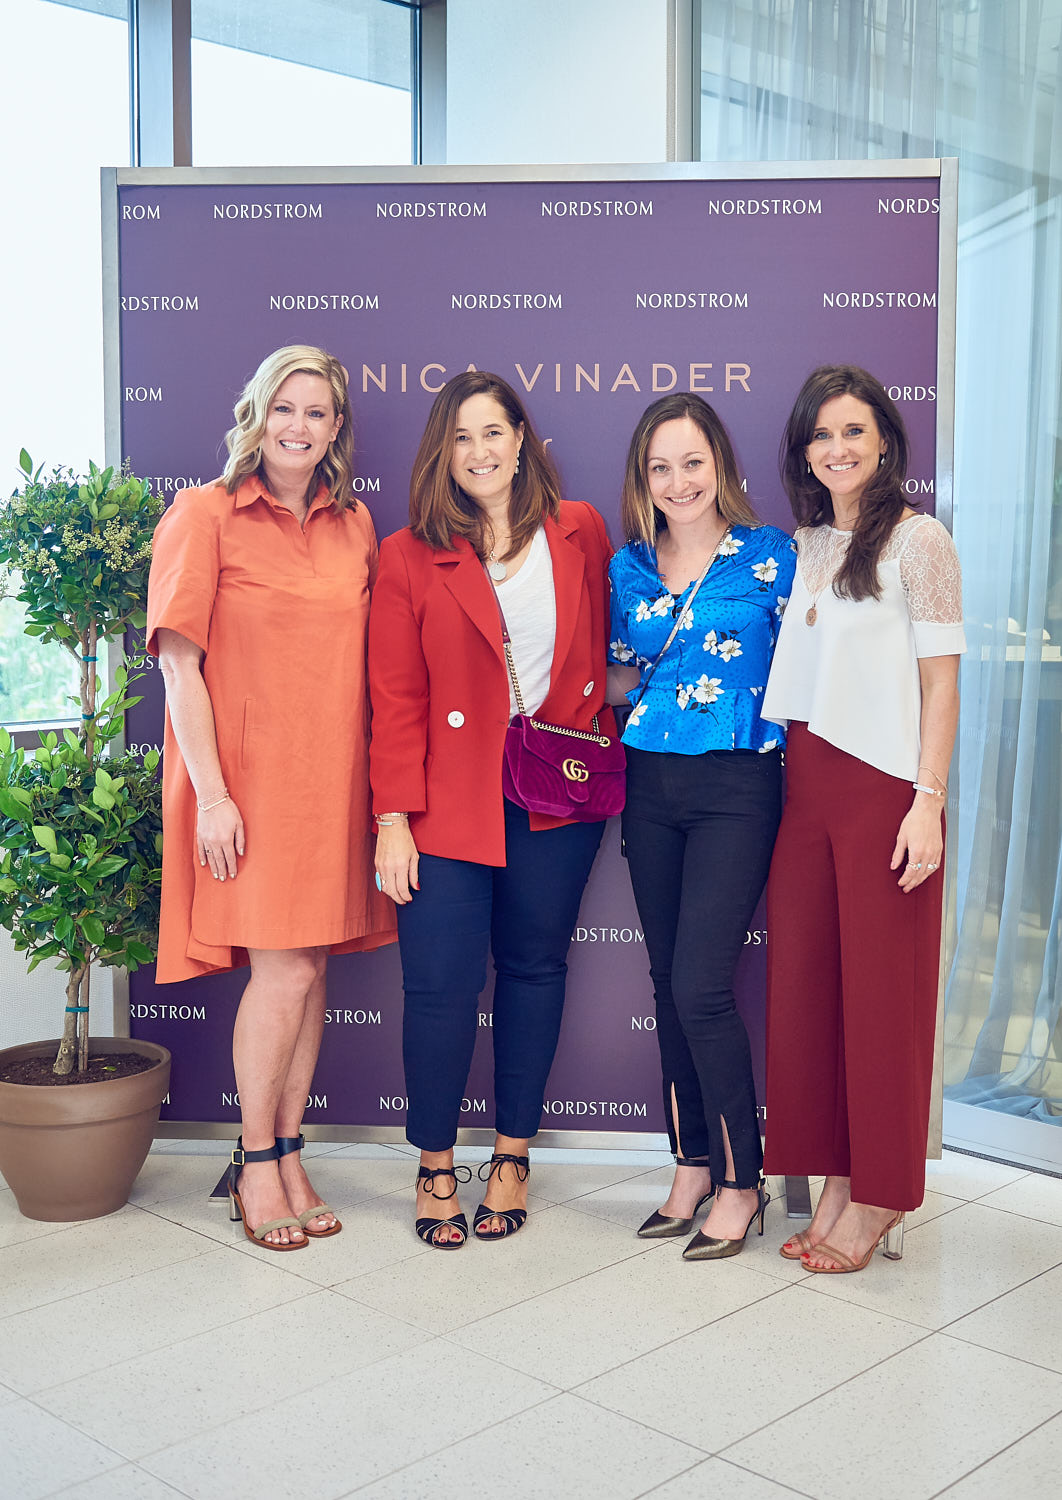 Nordstroms creative director with Monica and her team from left to right.